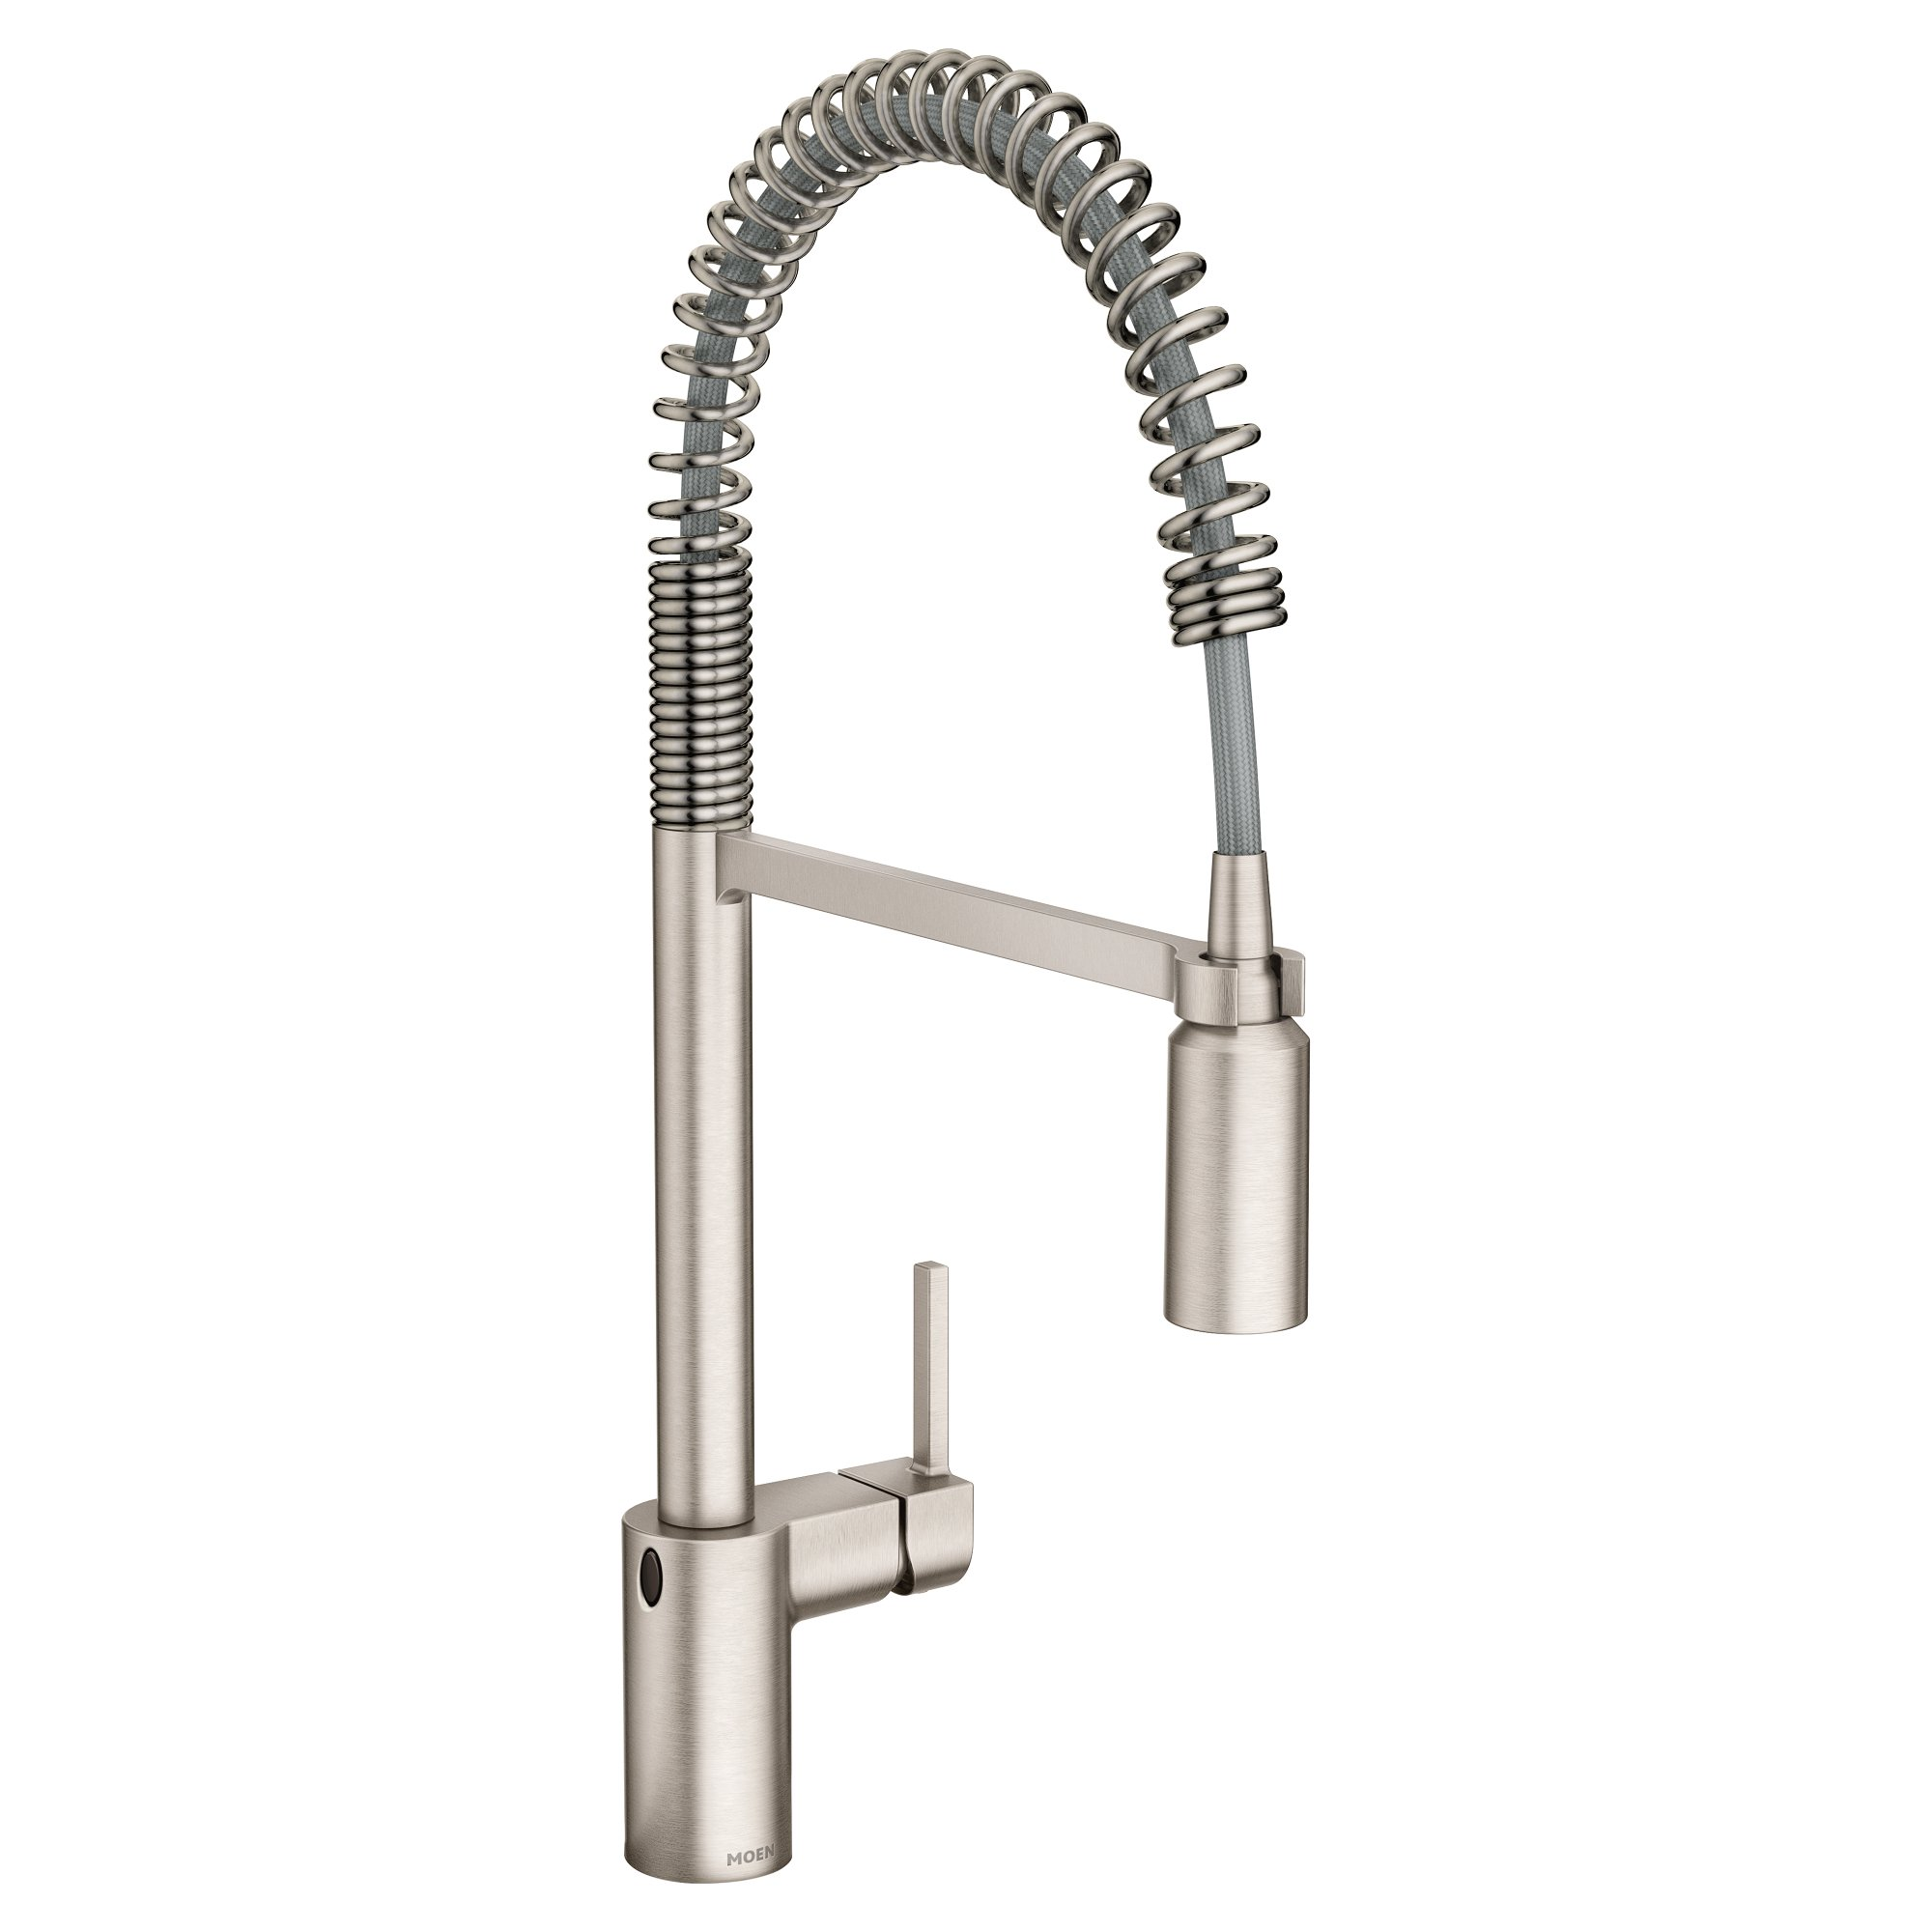 Moen 5923EWSRS Align Motionsense Wave Sensor Touchless One-Handle High Arc Spring Pre-Rinse Pulldown Kitchen Faucet, Spot Resist Stainless by Moen (Image #1)